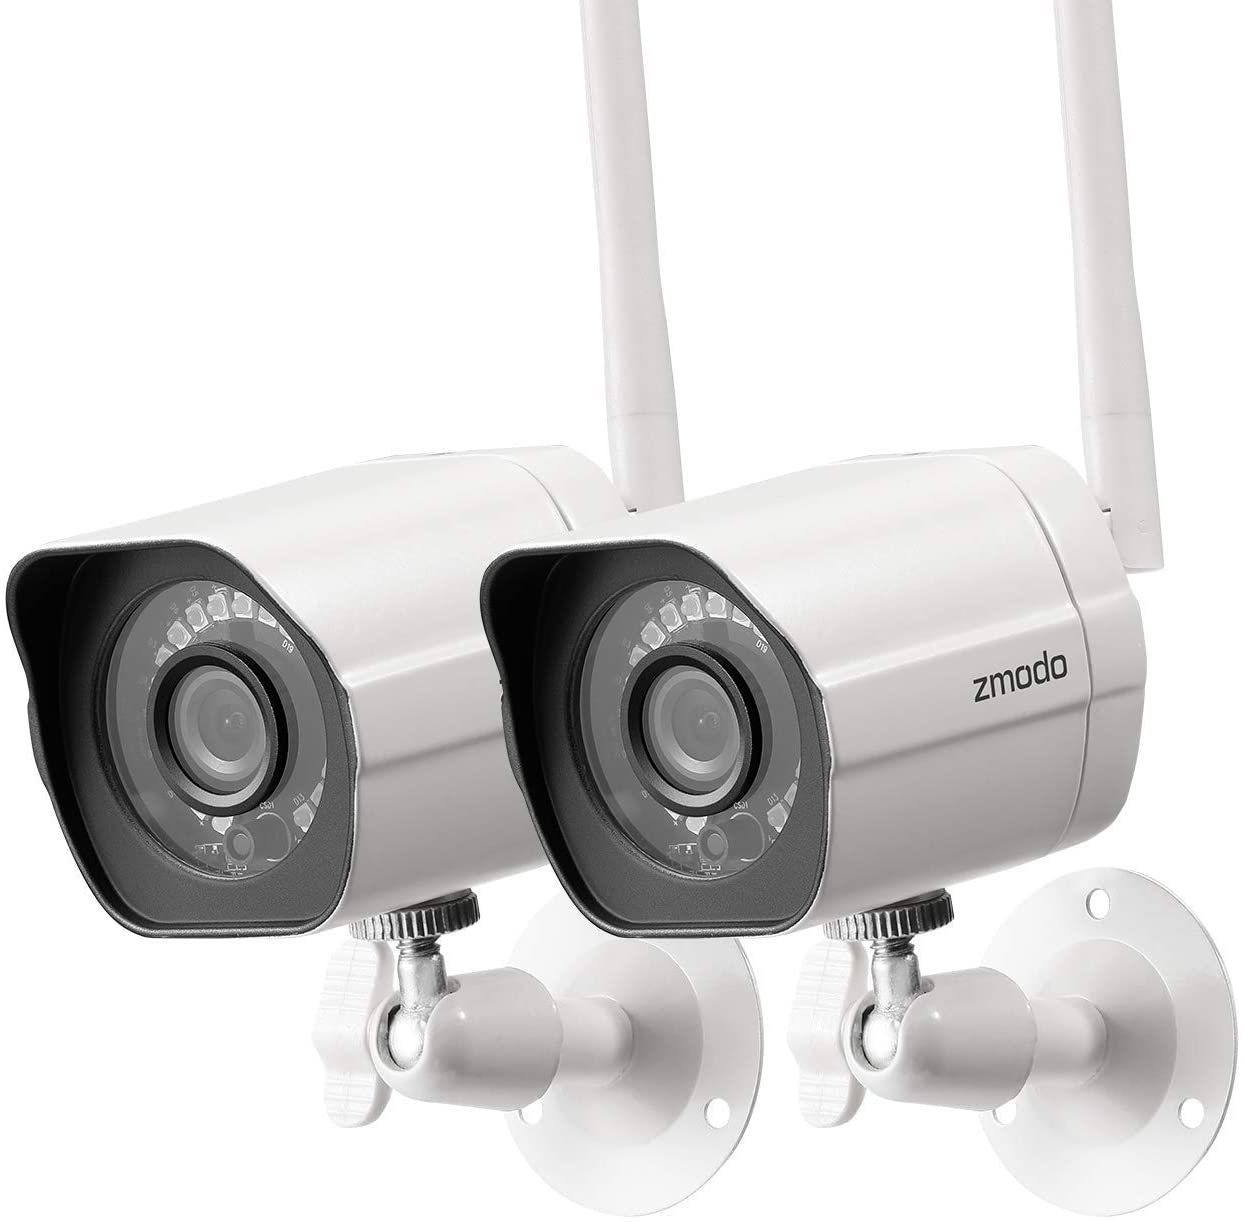 Finally resale start Zmodo 1080p Full HD Indefinitely Outdoor Wireless Camera Security P 2 System